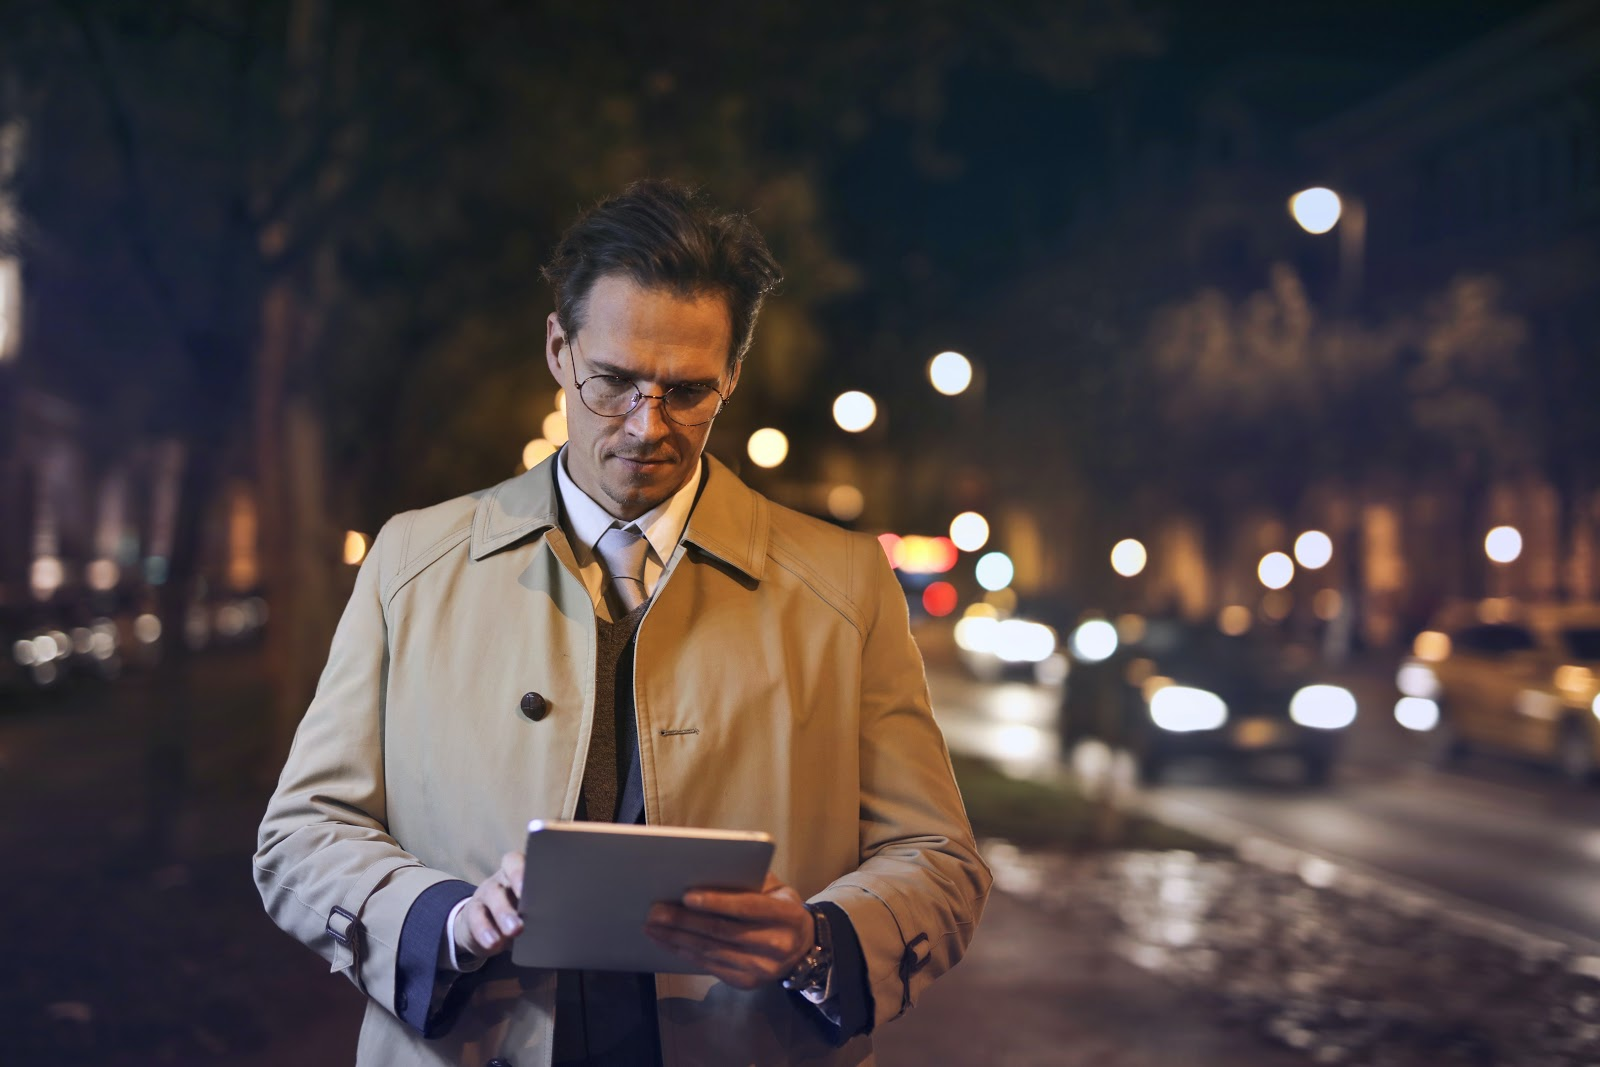 A smartly dressed man uses a tablet computer while walking down a city street at night.